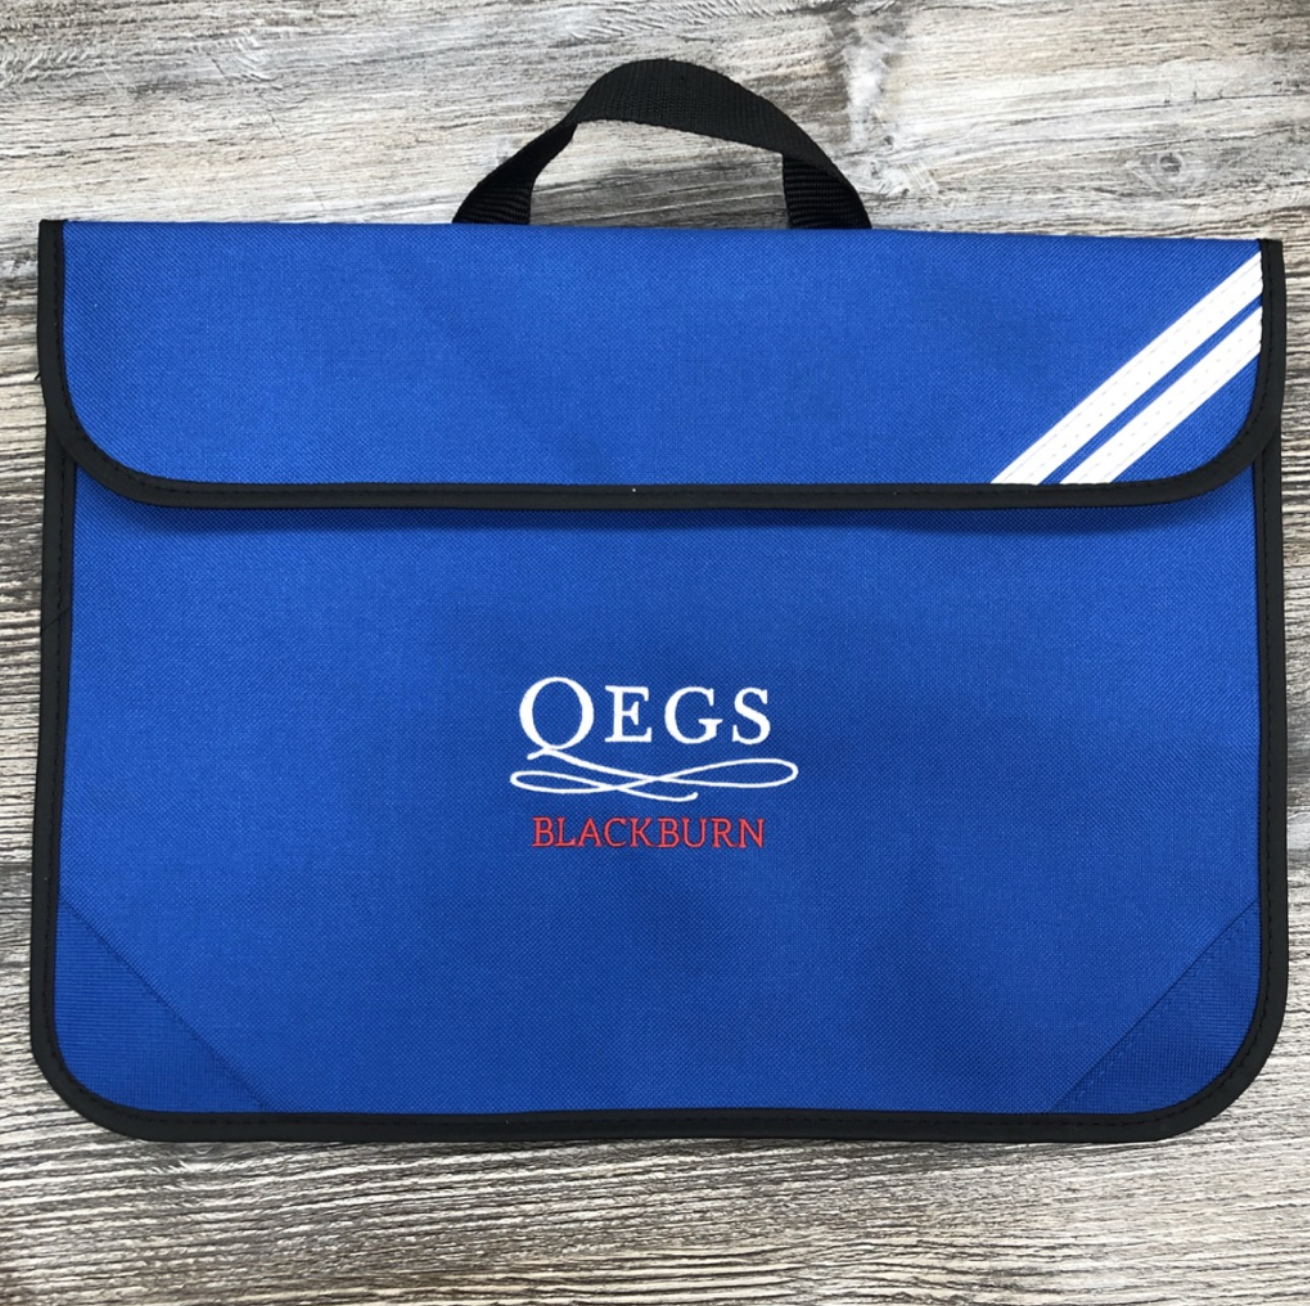 QEGS Bags